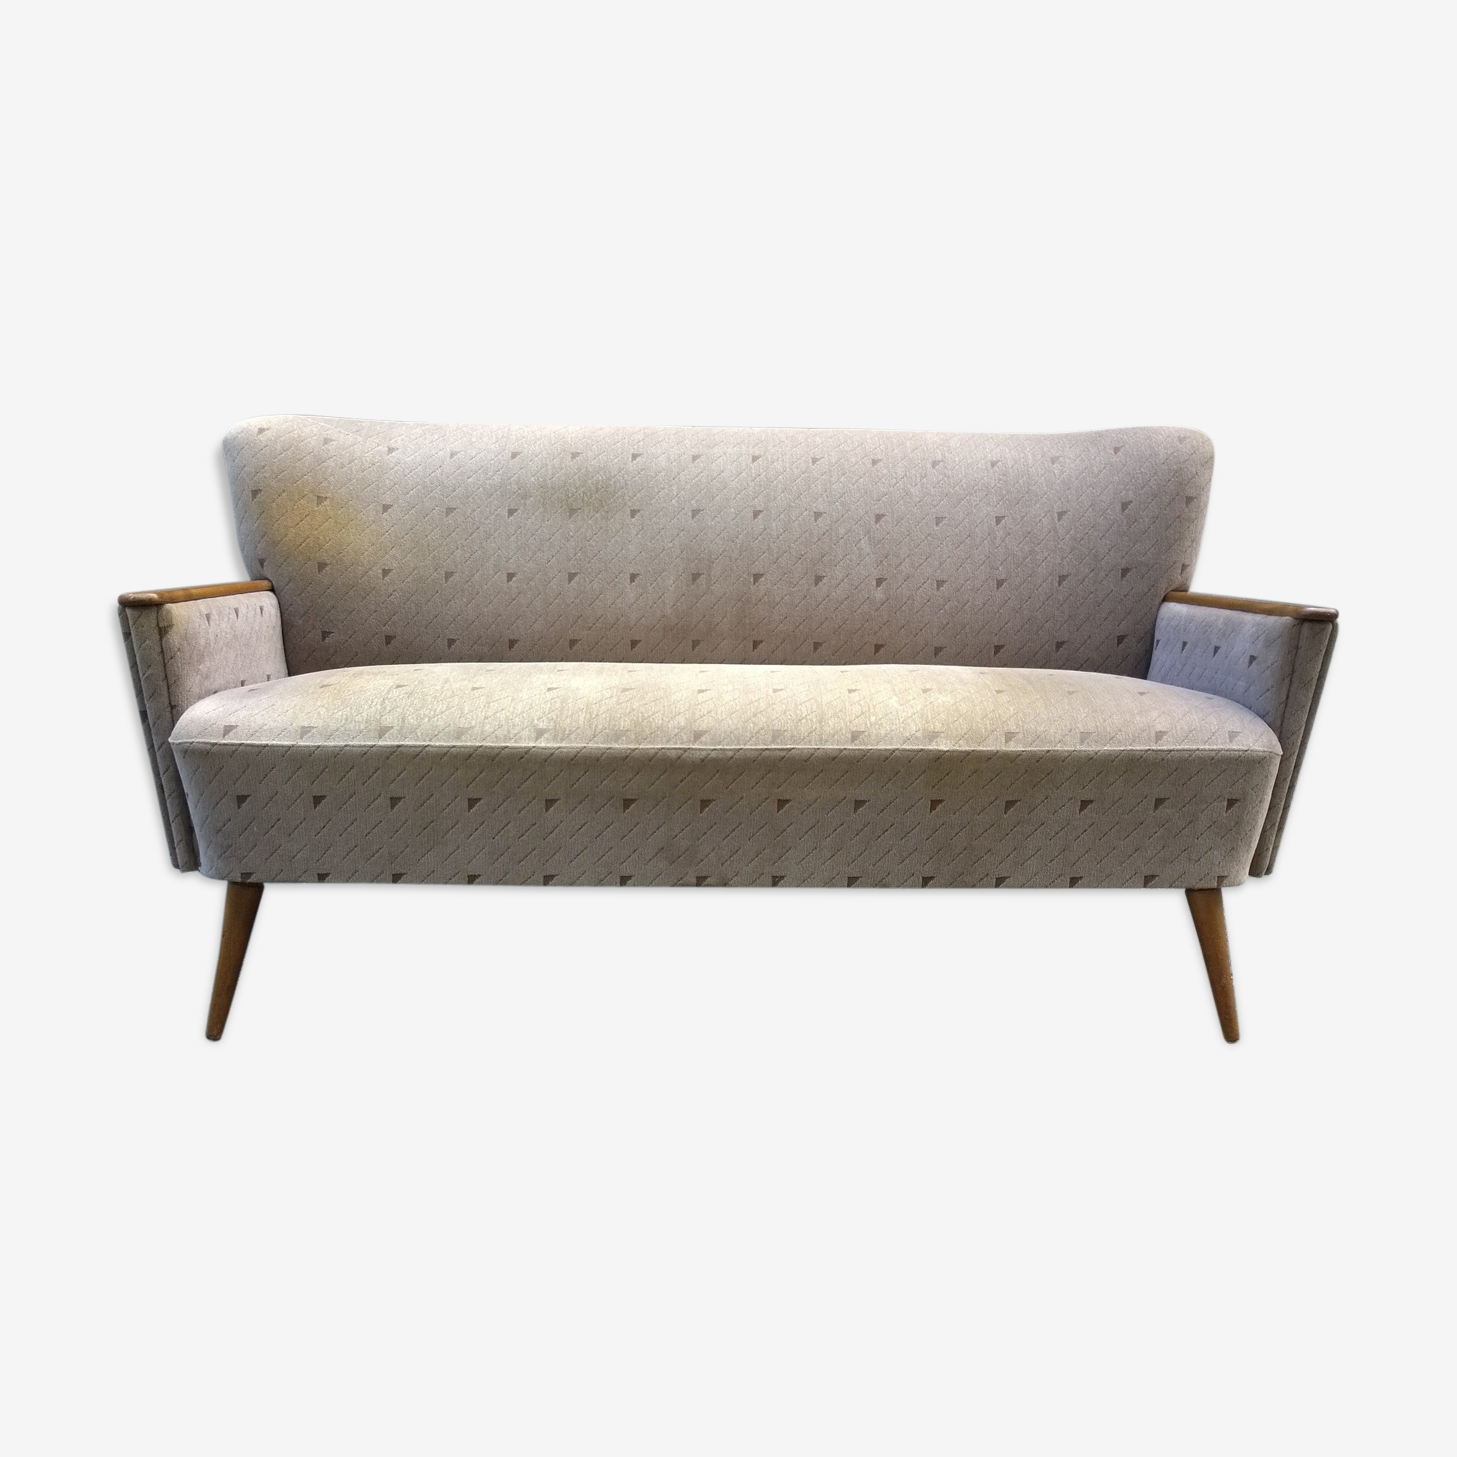 Sofa cocktail with armrests